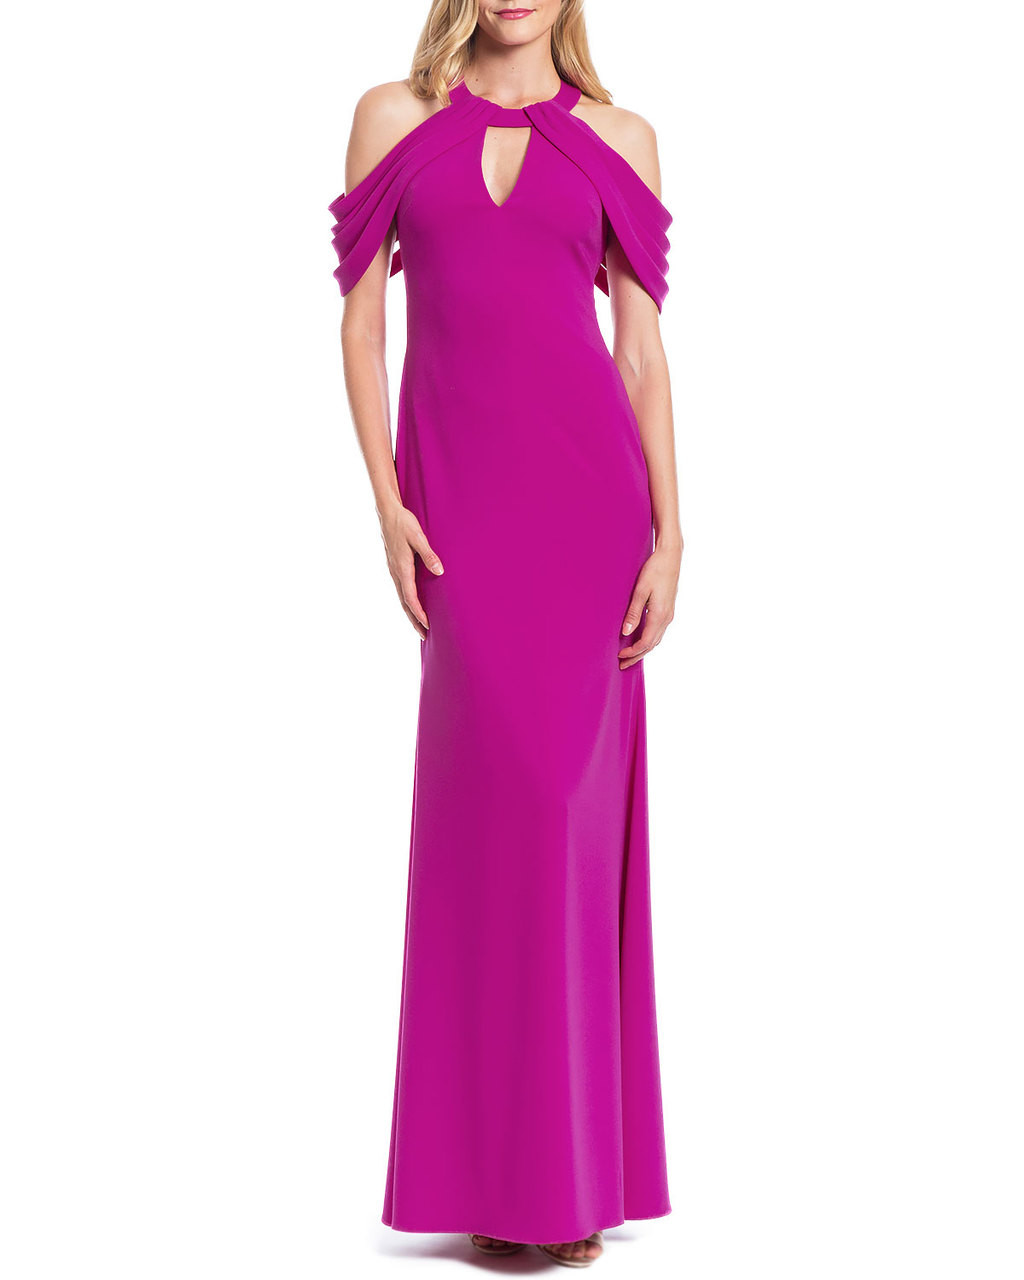 b6953e10a99 Loop-Shoulder Evening Gown by Badgley Mischka